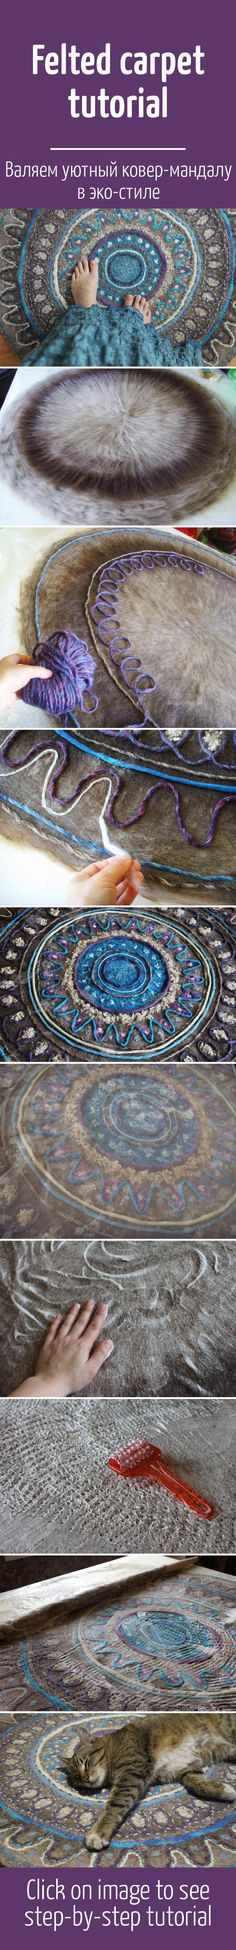 make your own wet felted boho moroccan style rug «Море внутри»: валяем уютный…